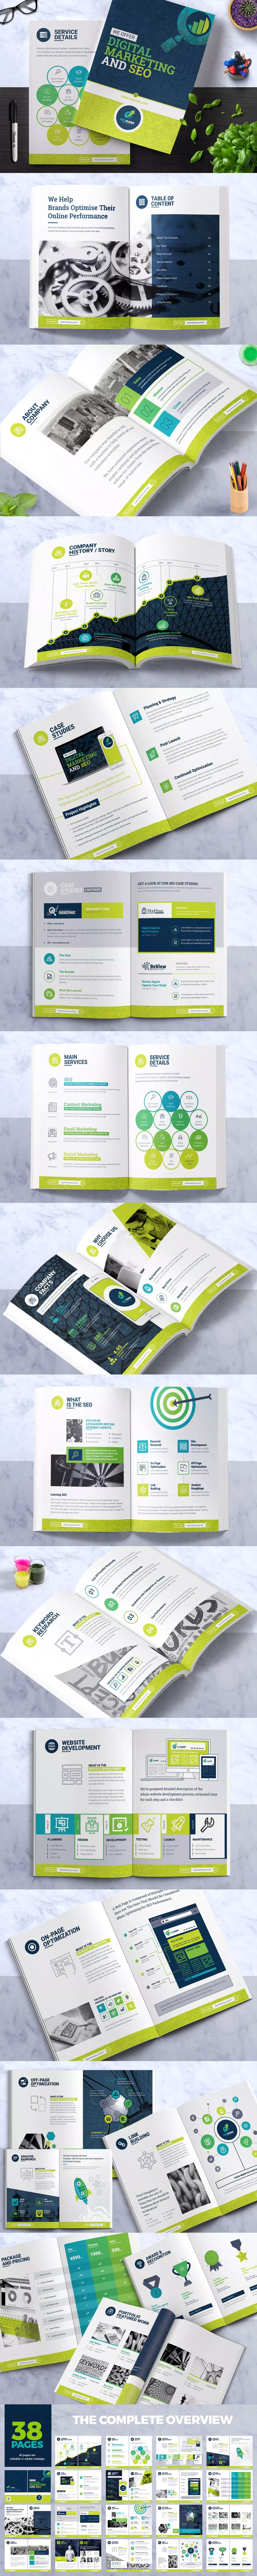 Bi-Fold Brochure Template for SEO (Search Engine) InDesign INDD